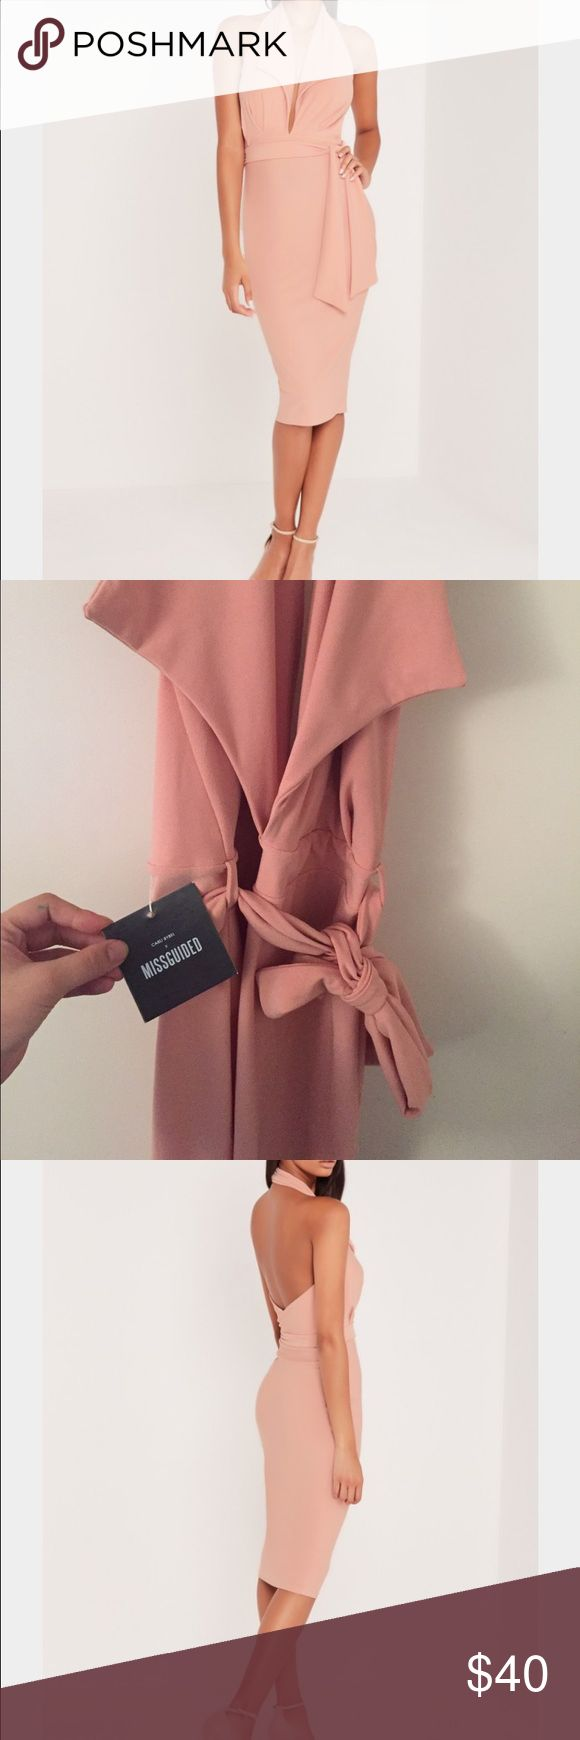 Carli bybel X misguided dress Carli bybel X misguided blazer style dress. Never worn!! Sizes: US 6 UK 10 EU 38 and AUS 10 misguided Dresses